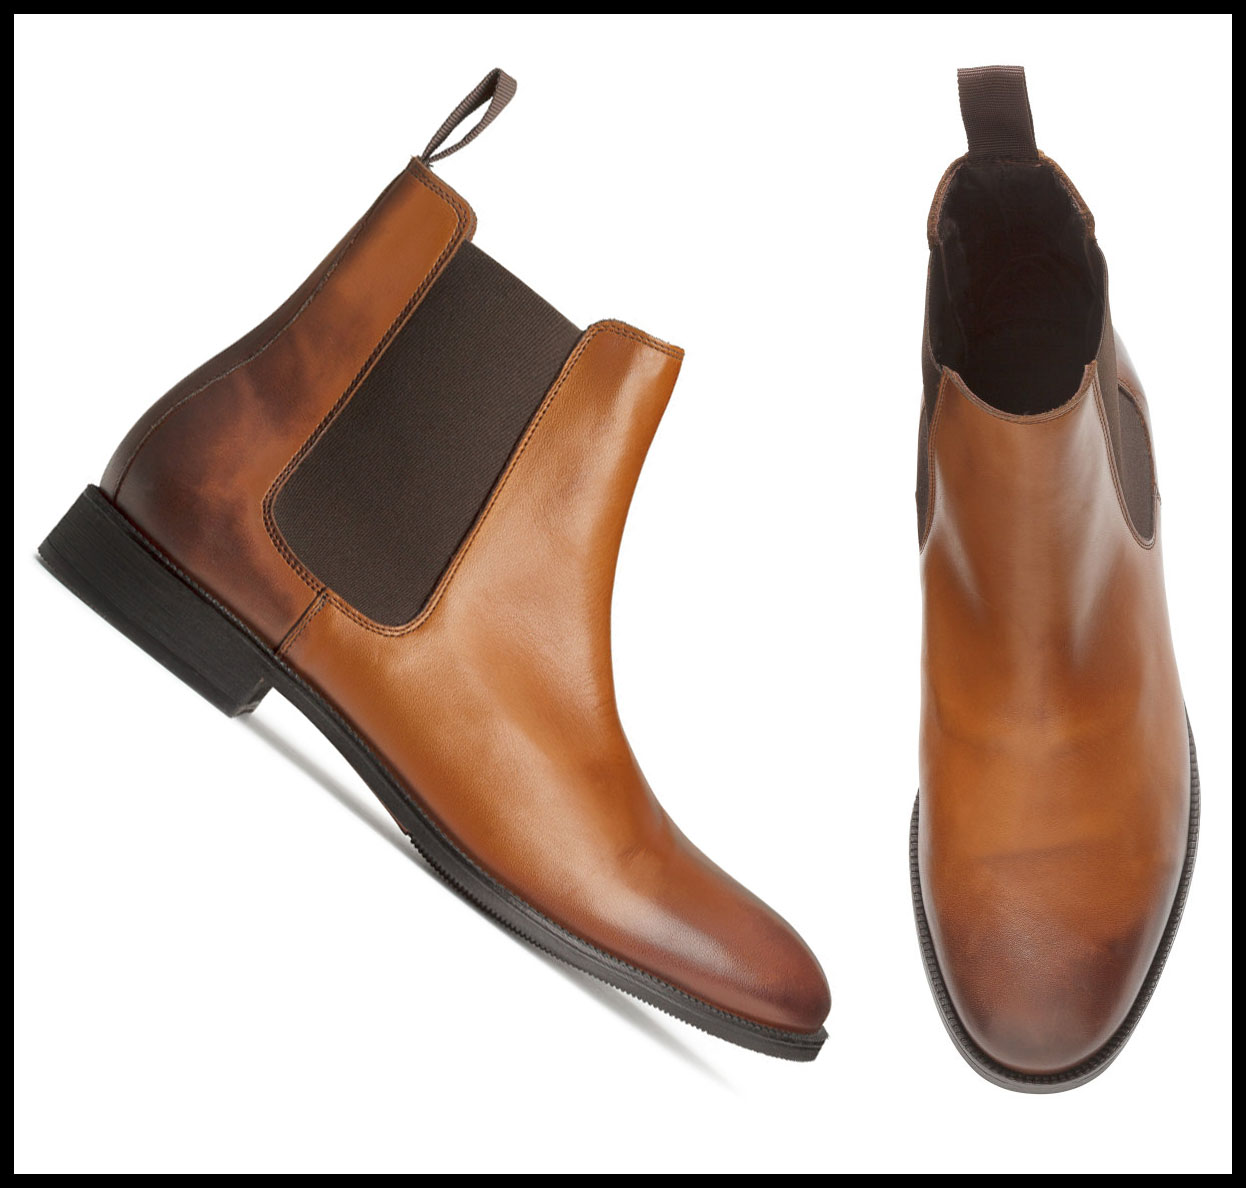 New Handmade Chelsea Brown Black Two tone leather boots, Men ankle boots, Brown & Black color boots